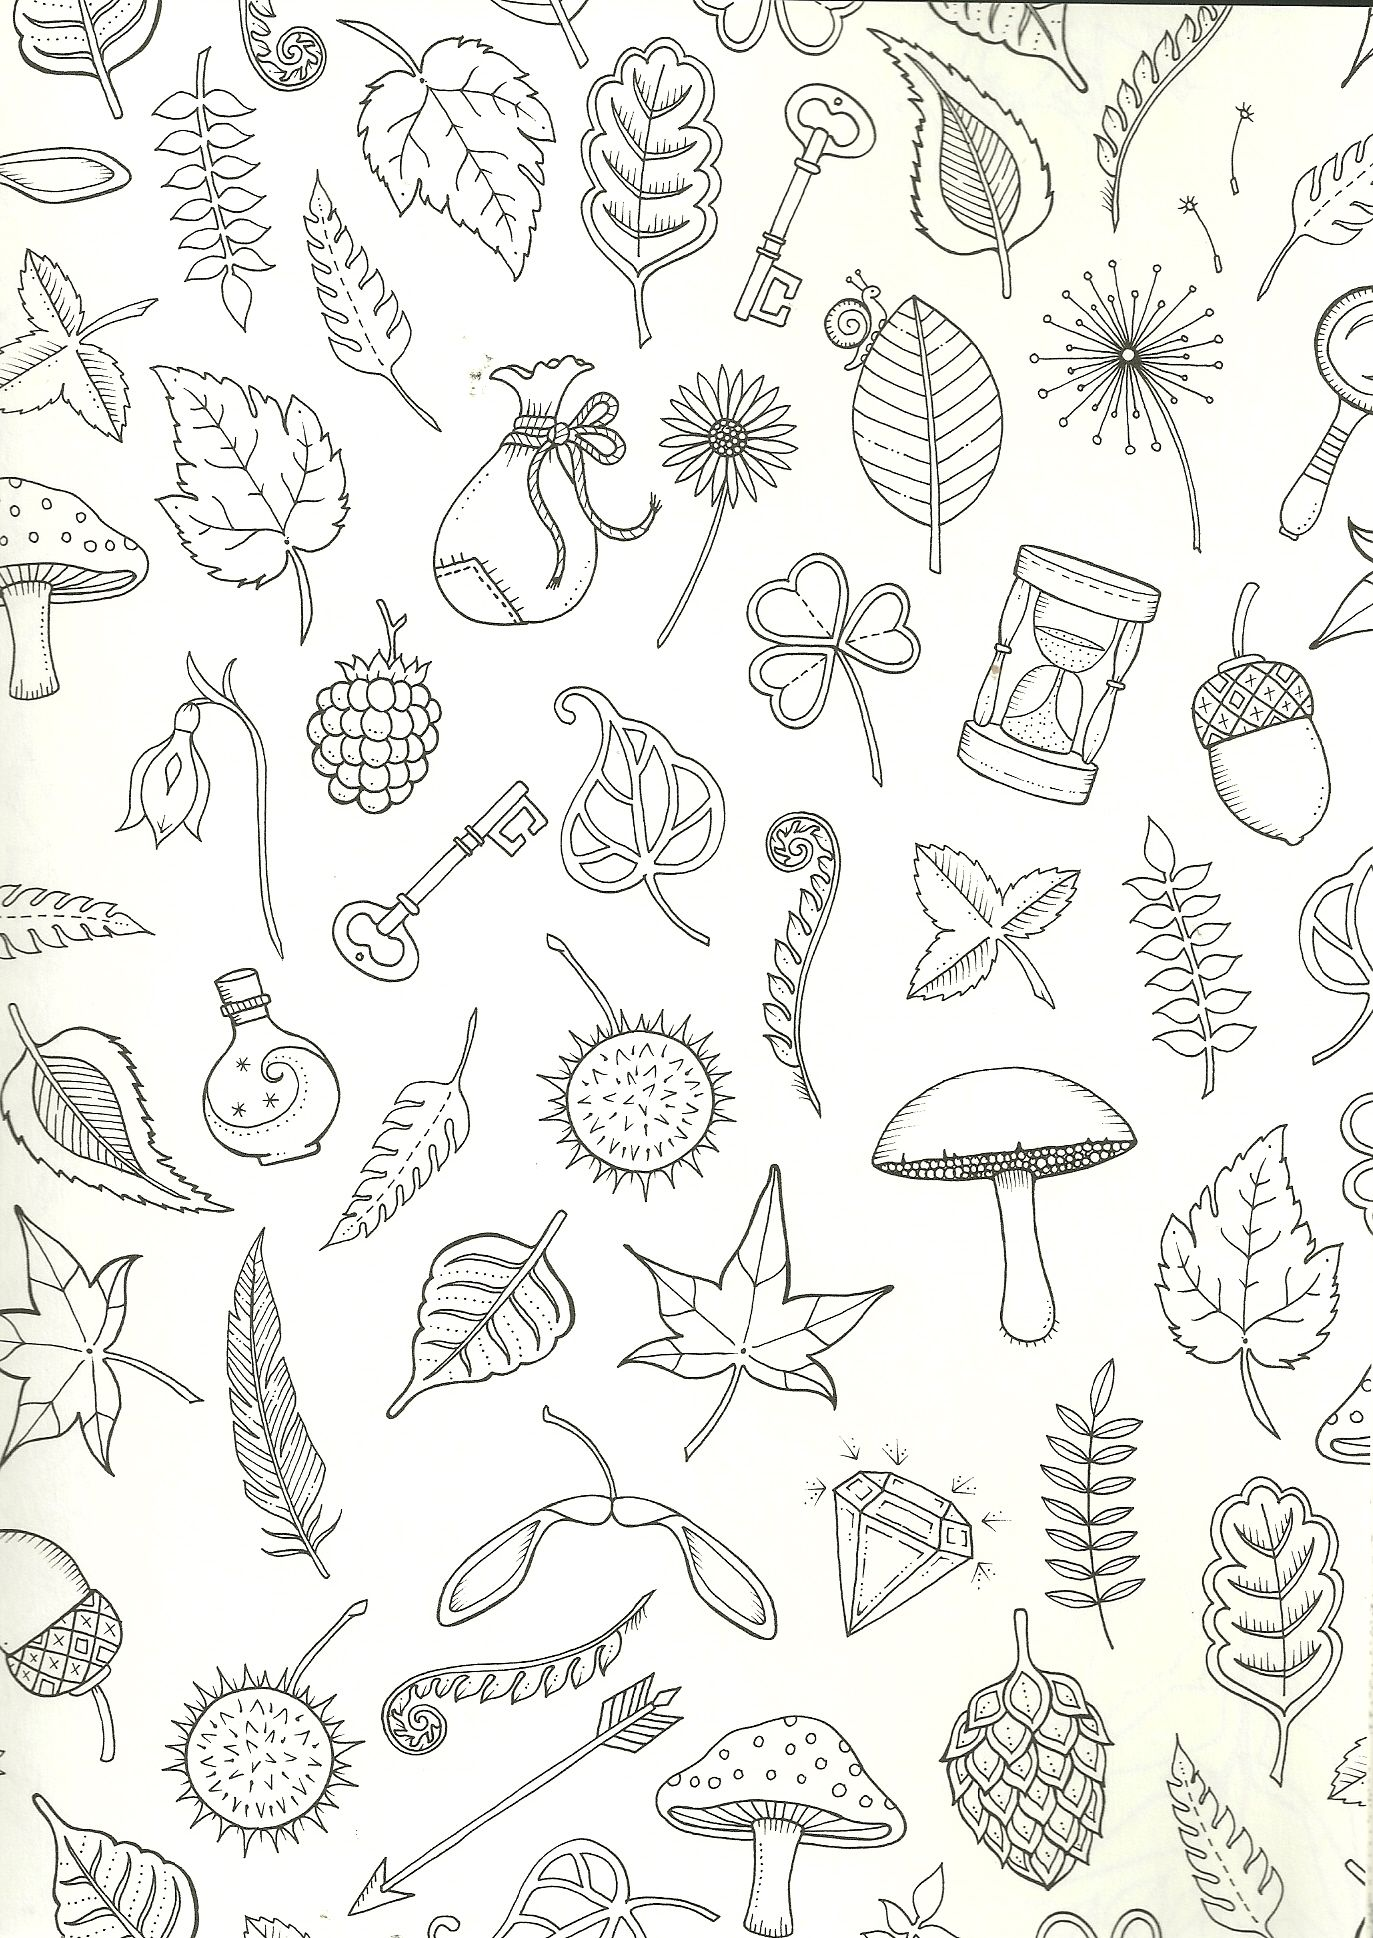 Random Things Coloring Page For Adults Enchanted Forest Coloring Book Enchanted Forest Coloring Johanna Basford Coloring Book